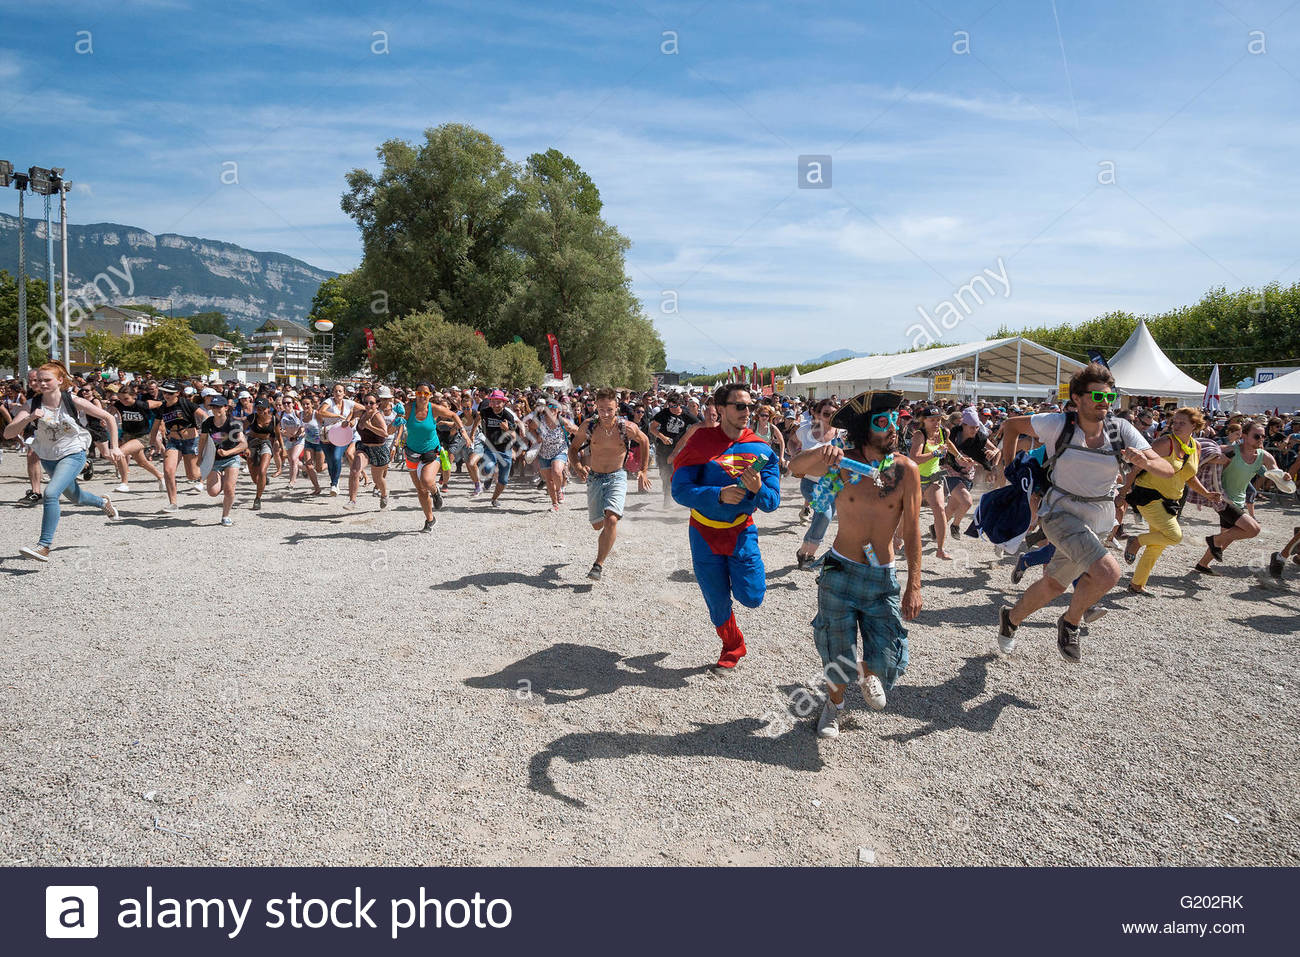 Musilac festival in Aix-les-Bains (France) - opening the gates: young peaople rushing to see their favorite bands - Stock Image